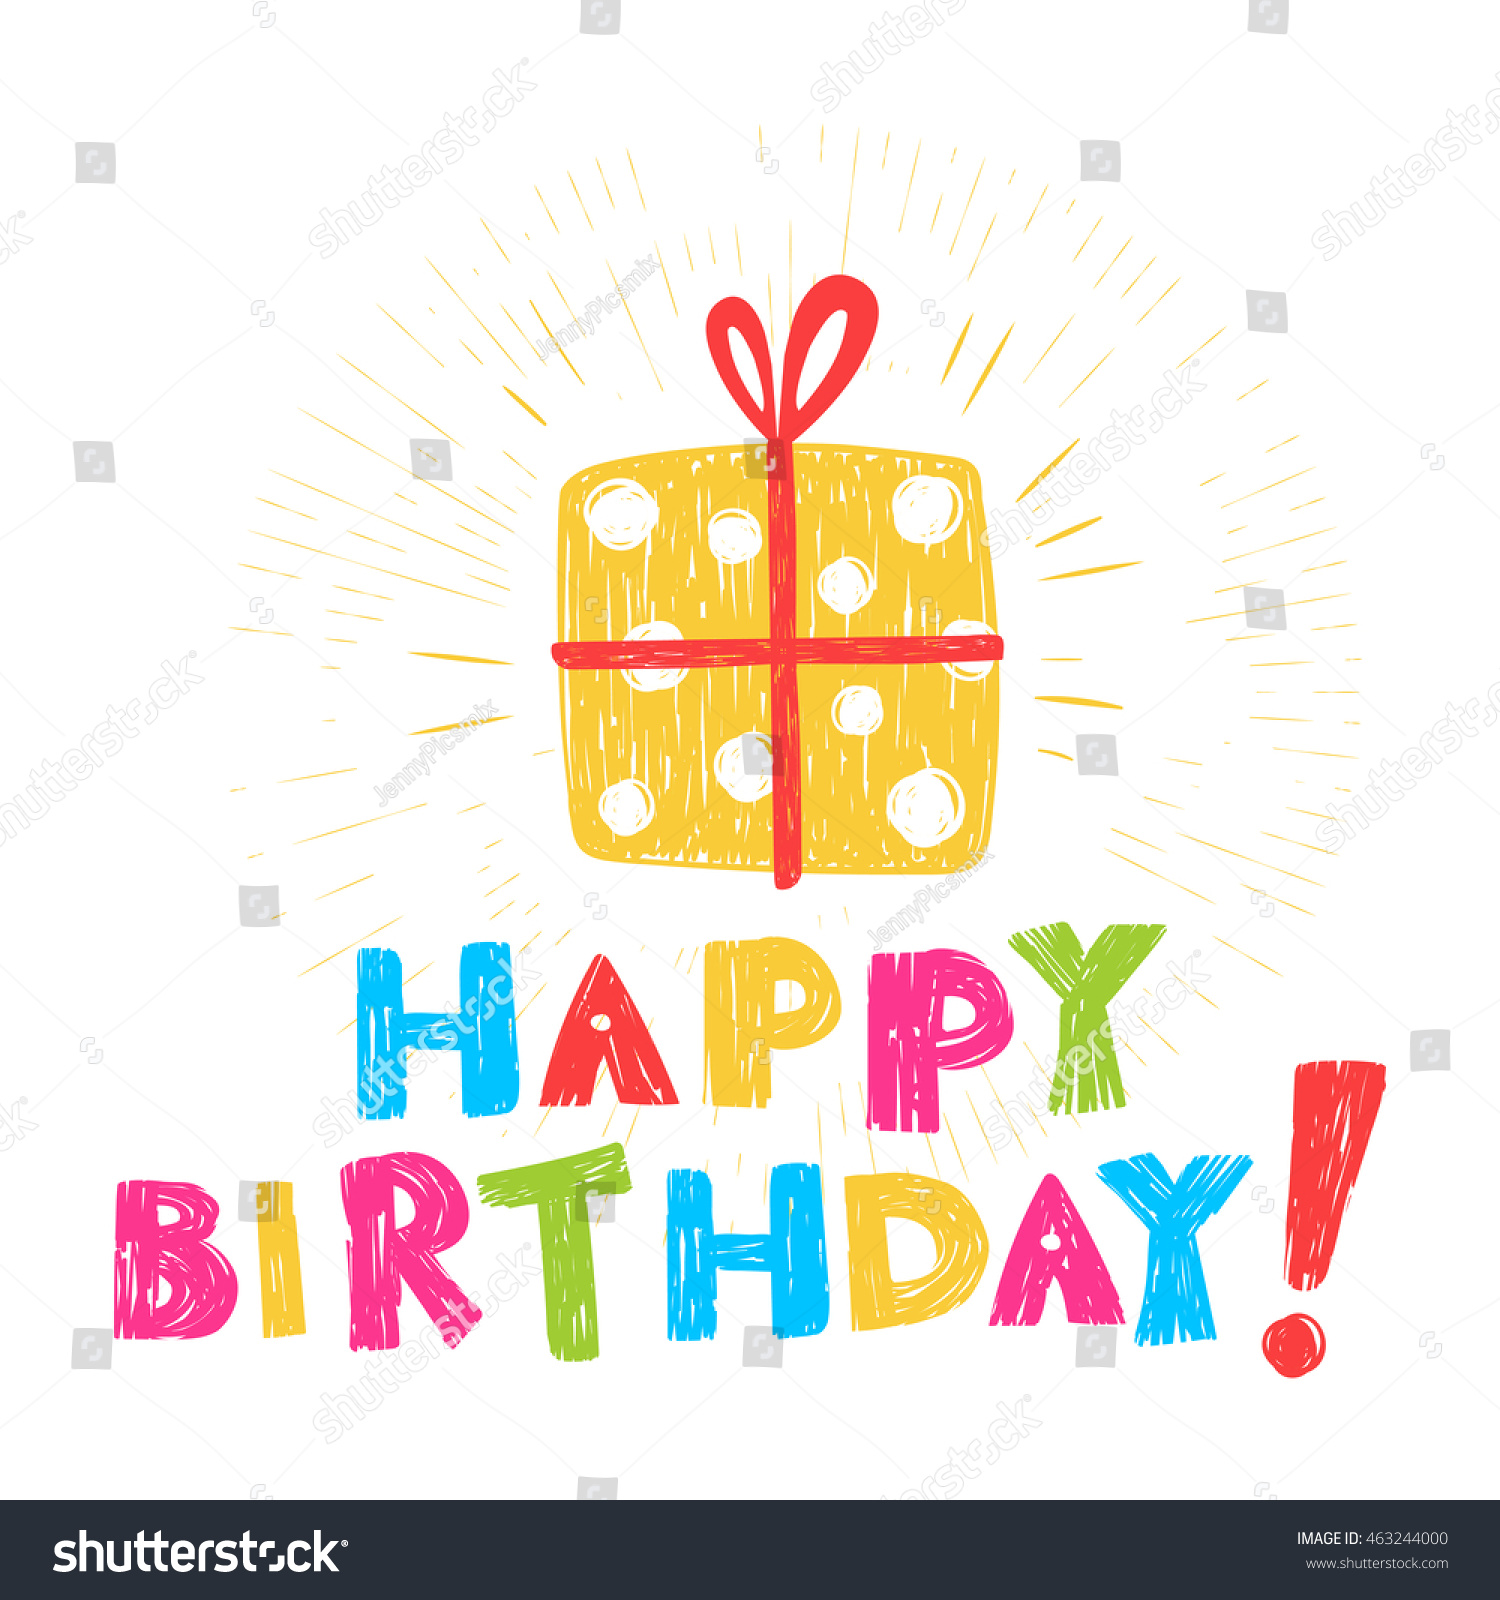 Birthday Card With Inscription Happy And Illustration Of Gift Stylized As Children Pencil Drawing